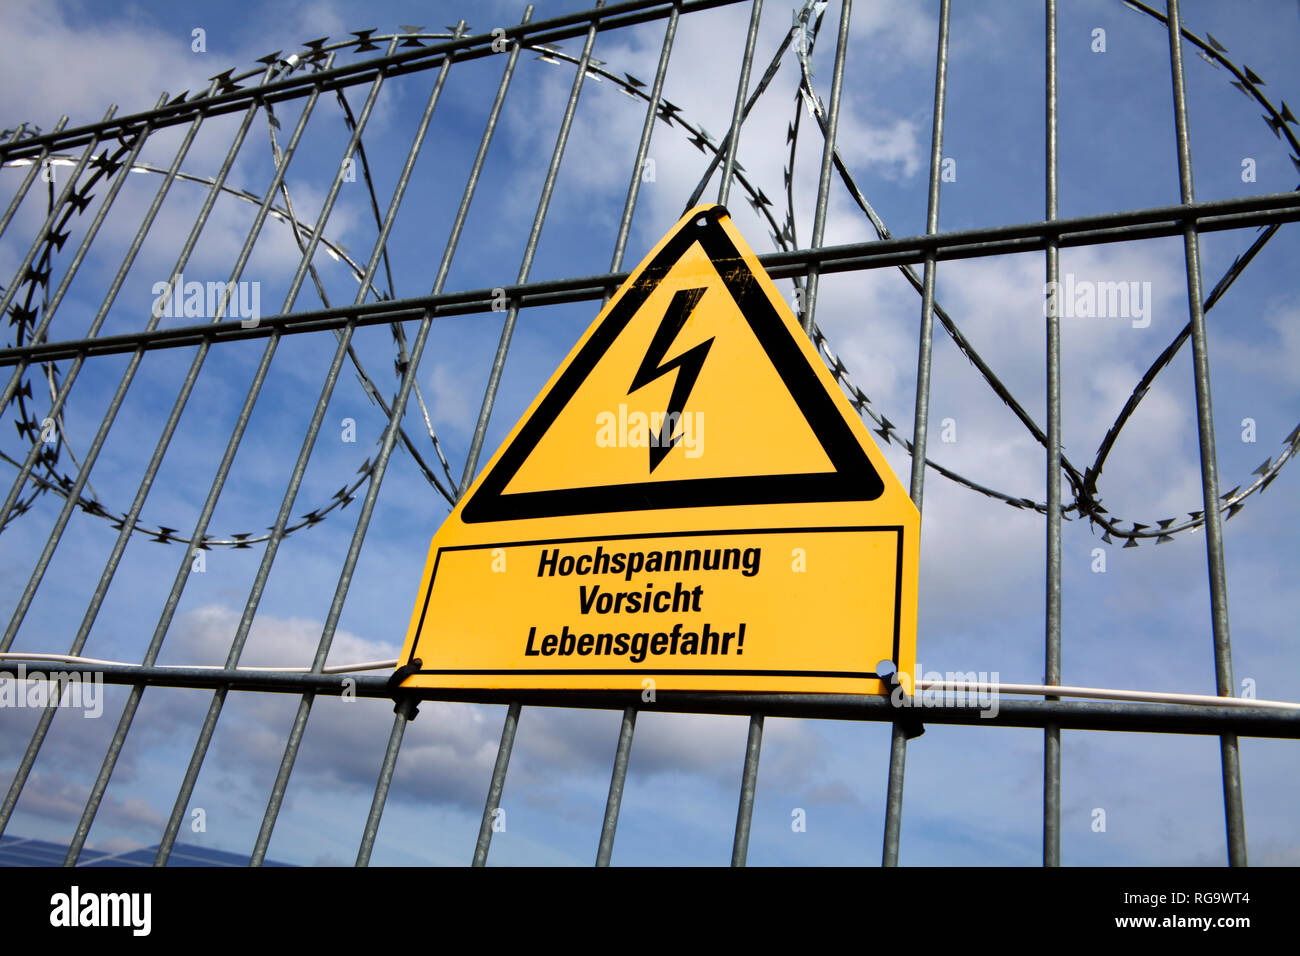 Signpost  and fence at an open space solar photovoltaic plant, Germany, Europe - Stock Image